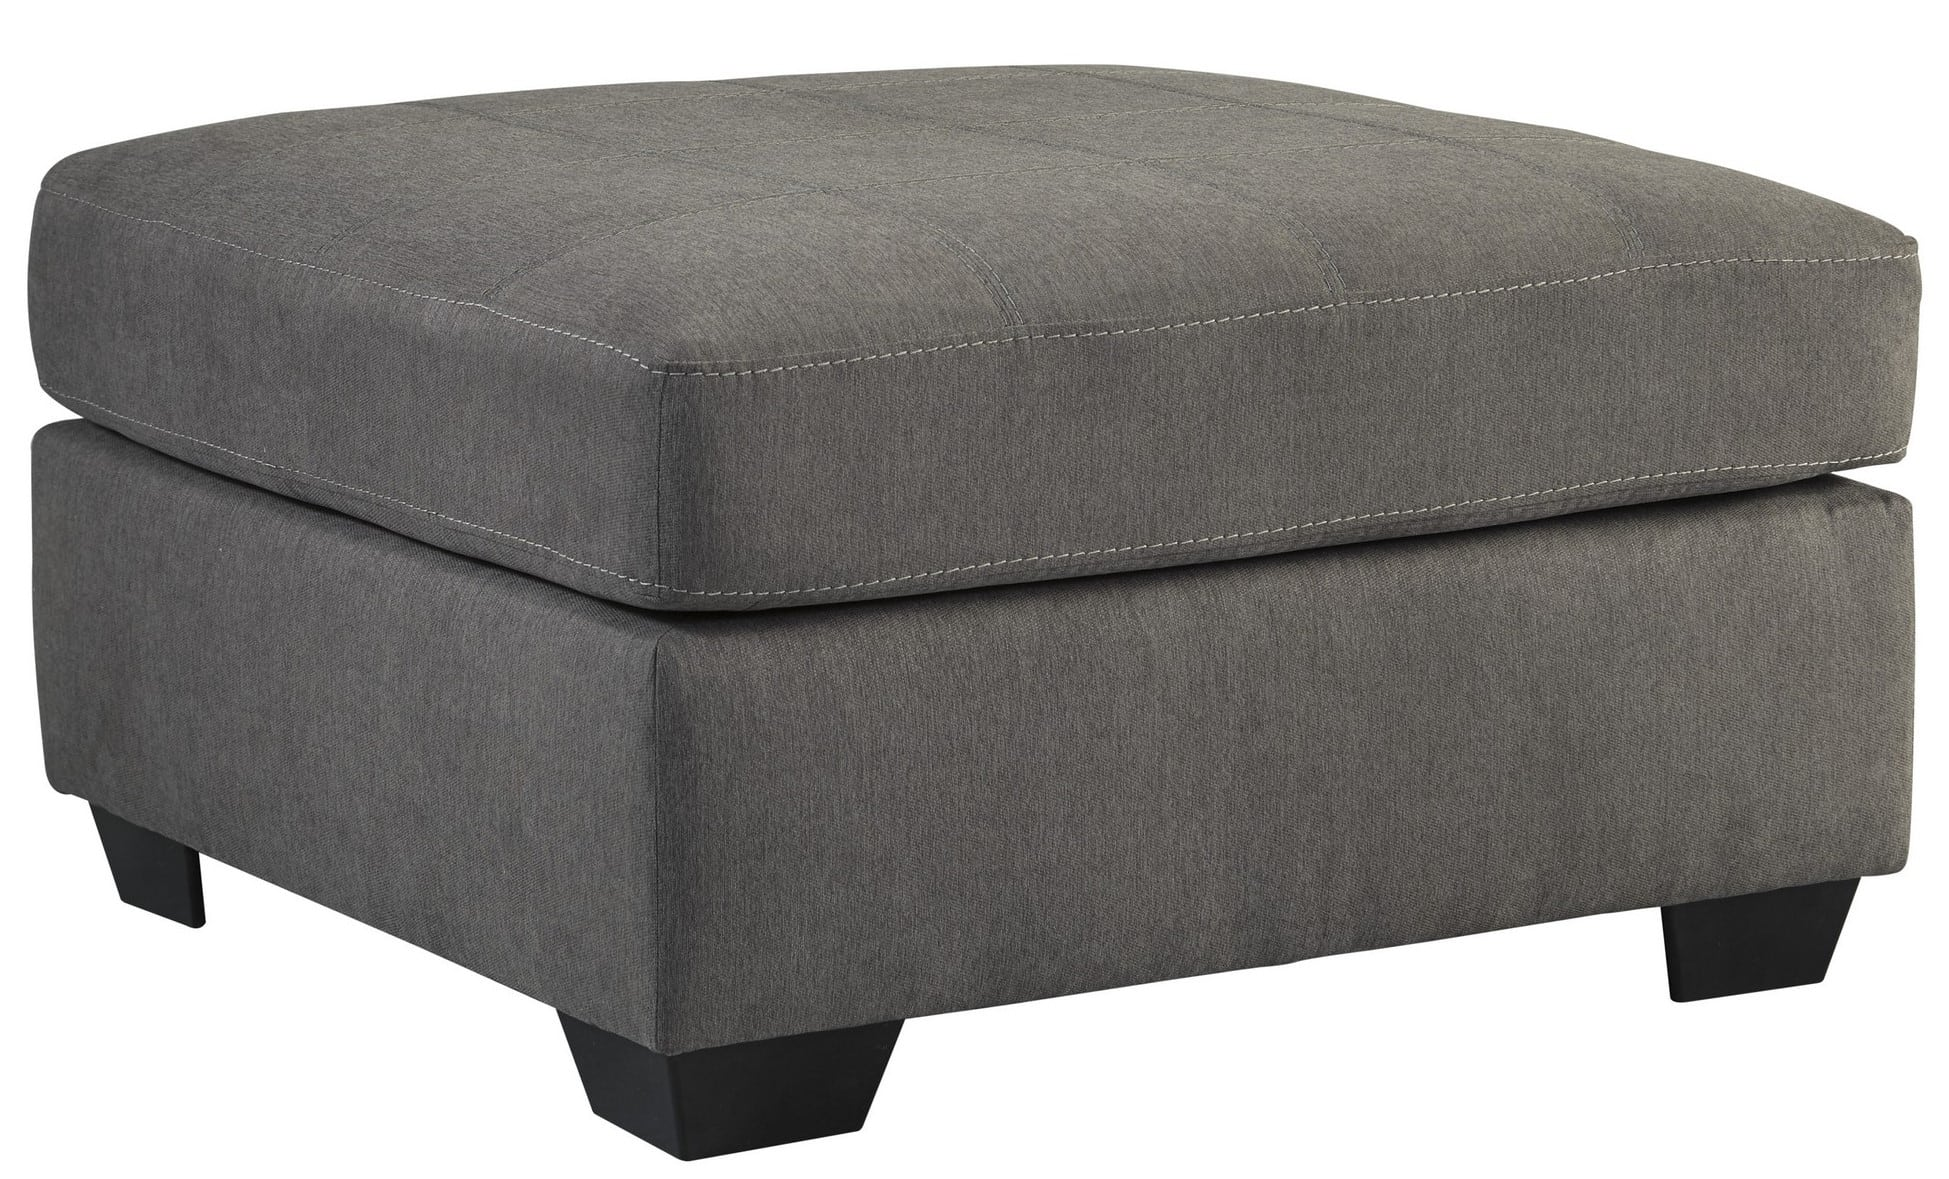 Signature Design by Ashley Maier Charcoal Oversized Accent Ottoman on cyclone design homes, yellow design homes, brick design homes, oak design homes, glass design homes, royal design homes, natural design homes, stone design homes,